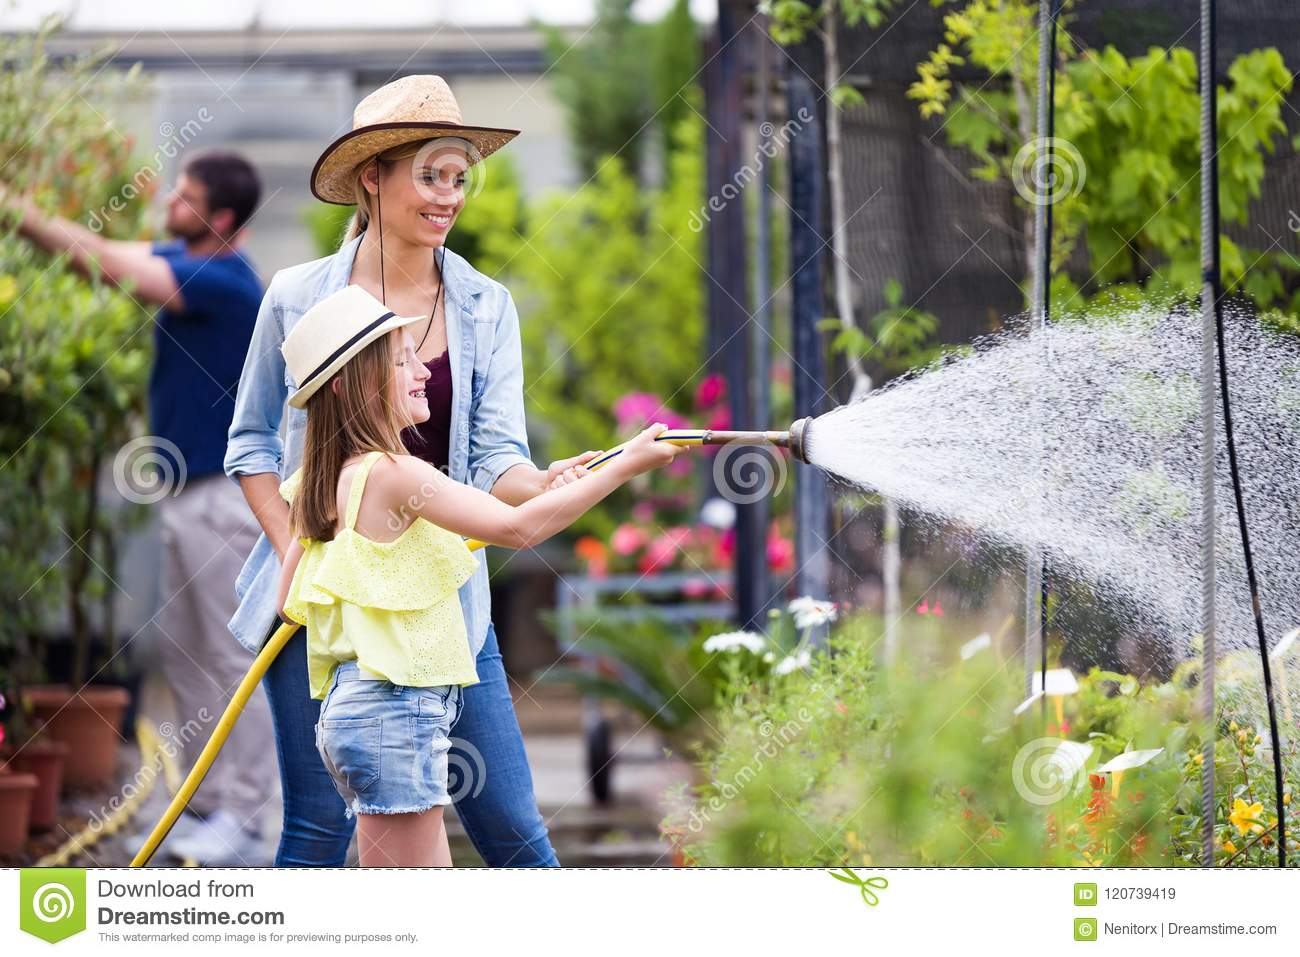 Beautiful young woman with her daughter watering the plants with a hose in the greenhouse.